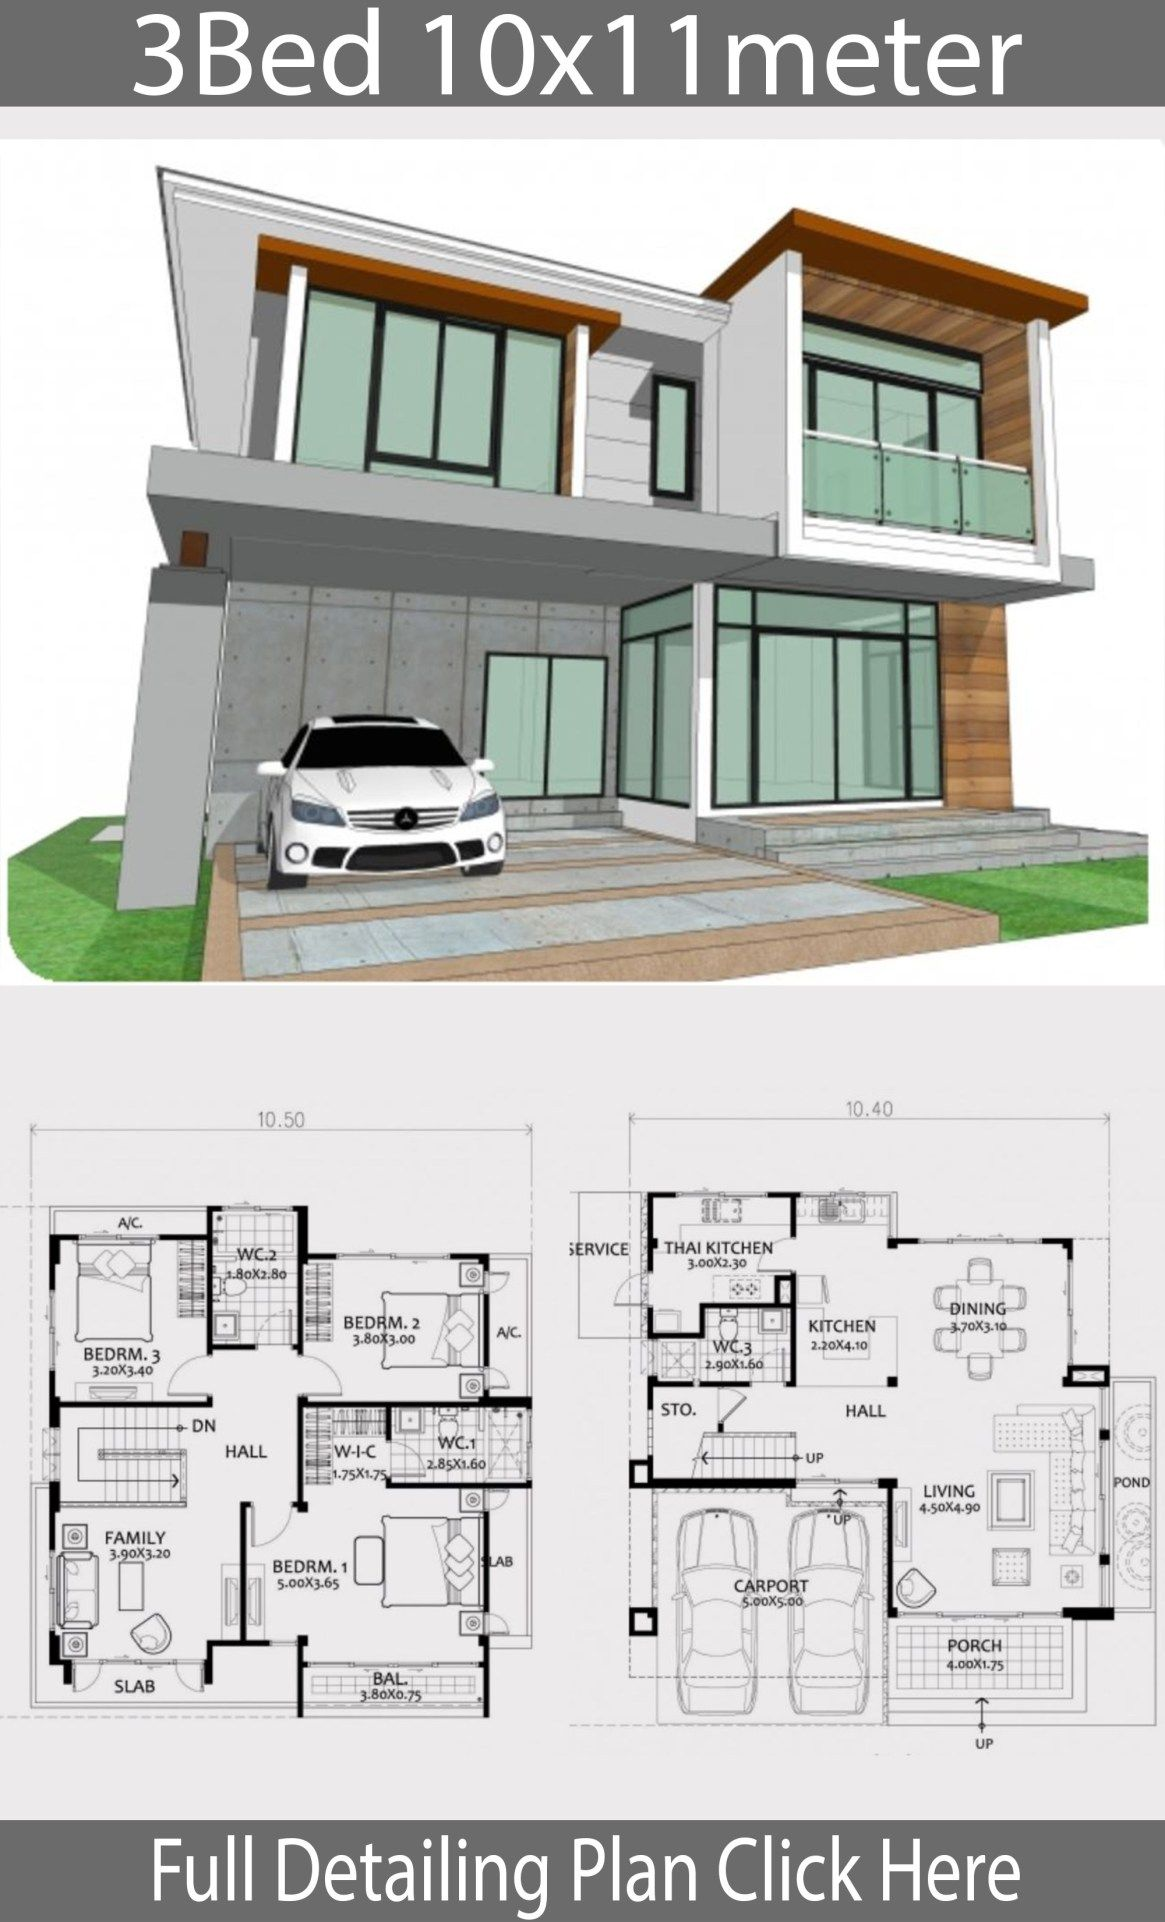 Home Design Plan 10x11m With 3 Bedrooms Home Design With Plansearch Loft House Design House Design Bungalow House Design